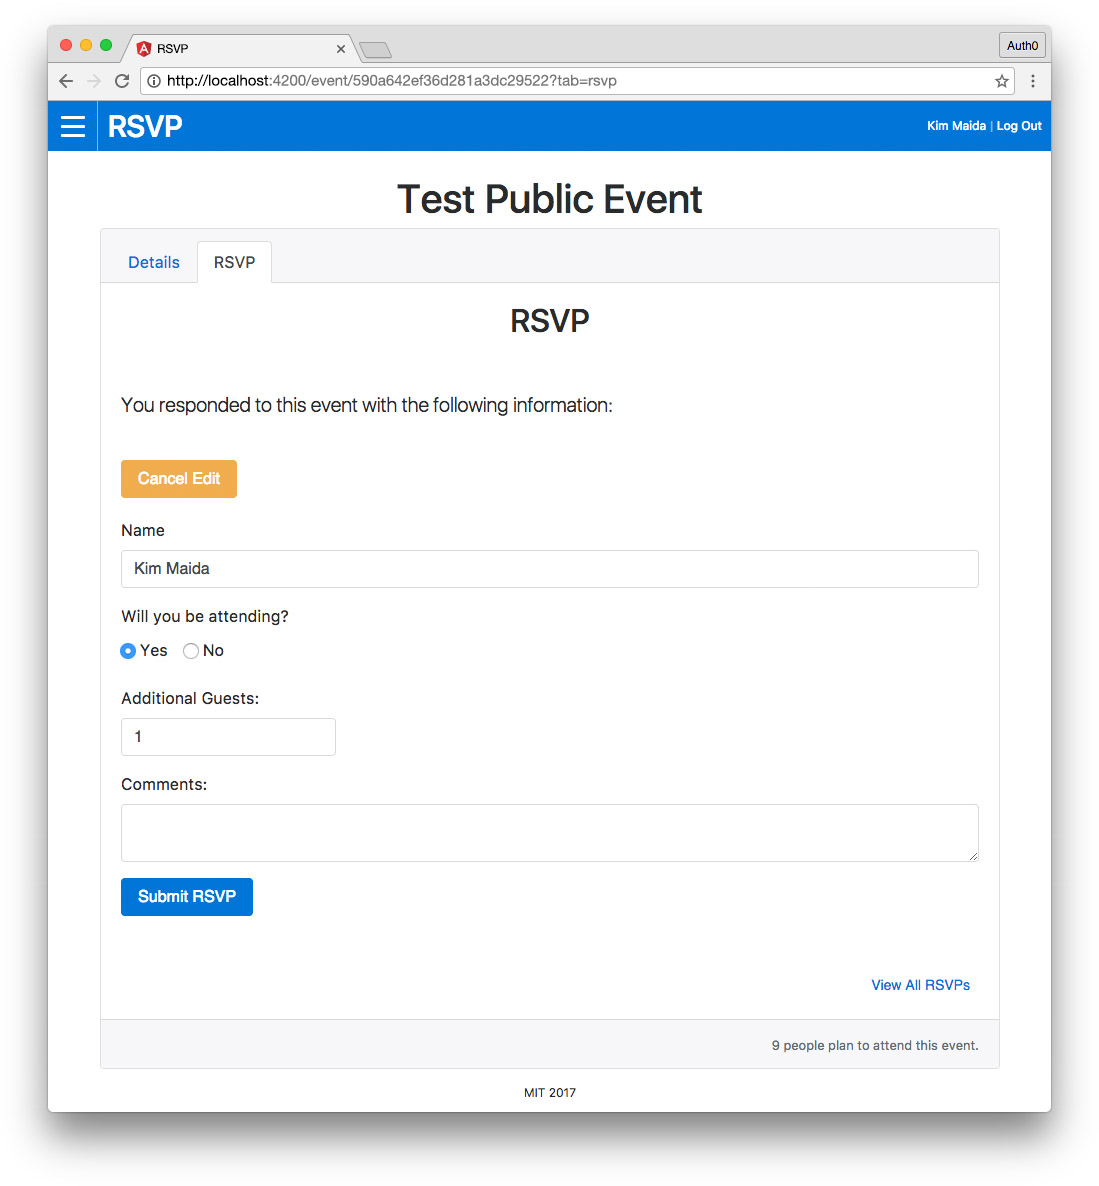 Angular RSVP app - edit RSVP template-driven form